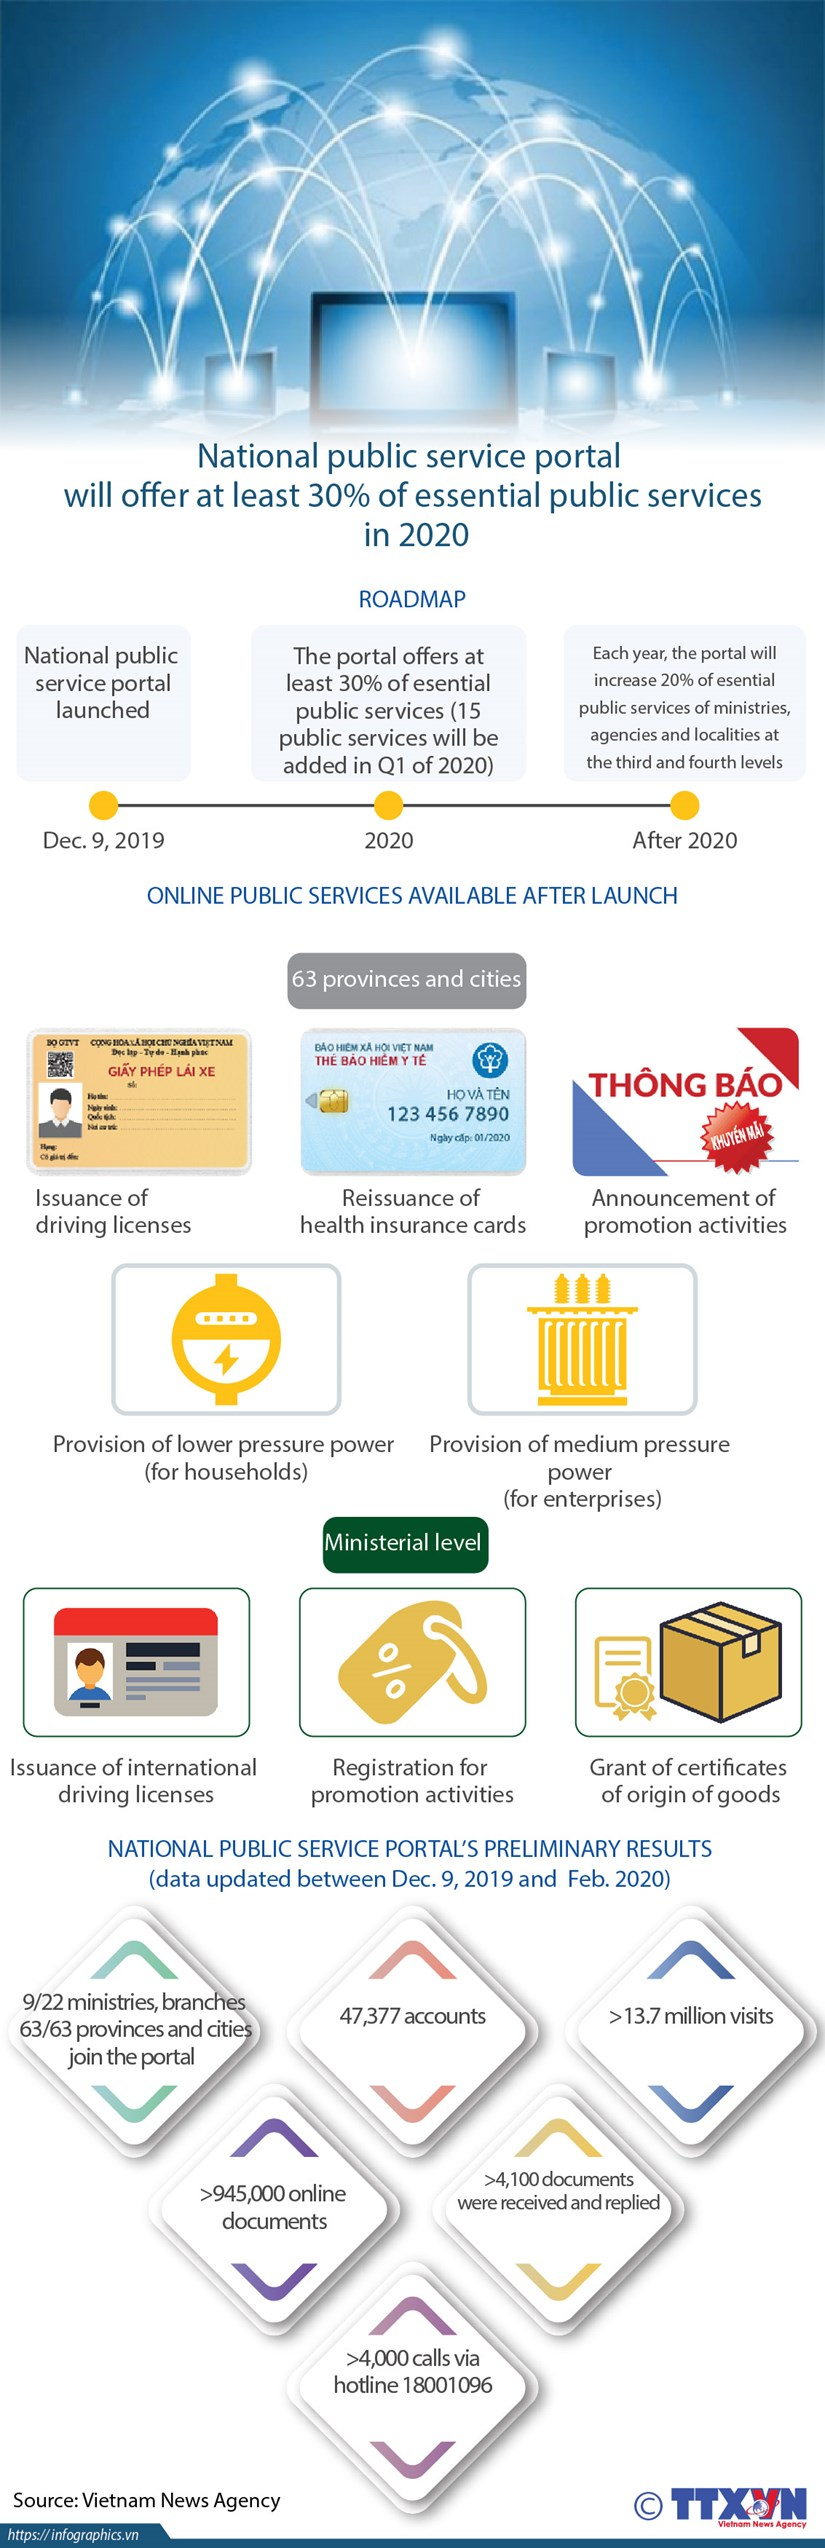 National public service portal's preliminary results hinh anh 1